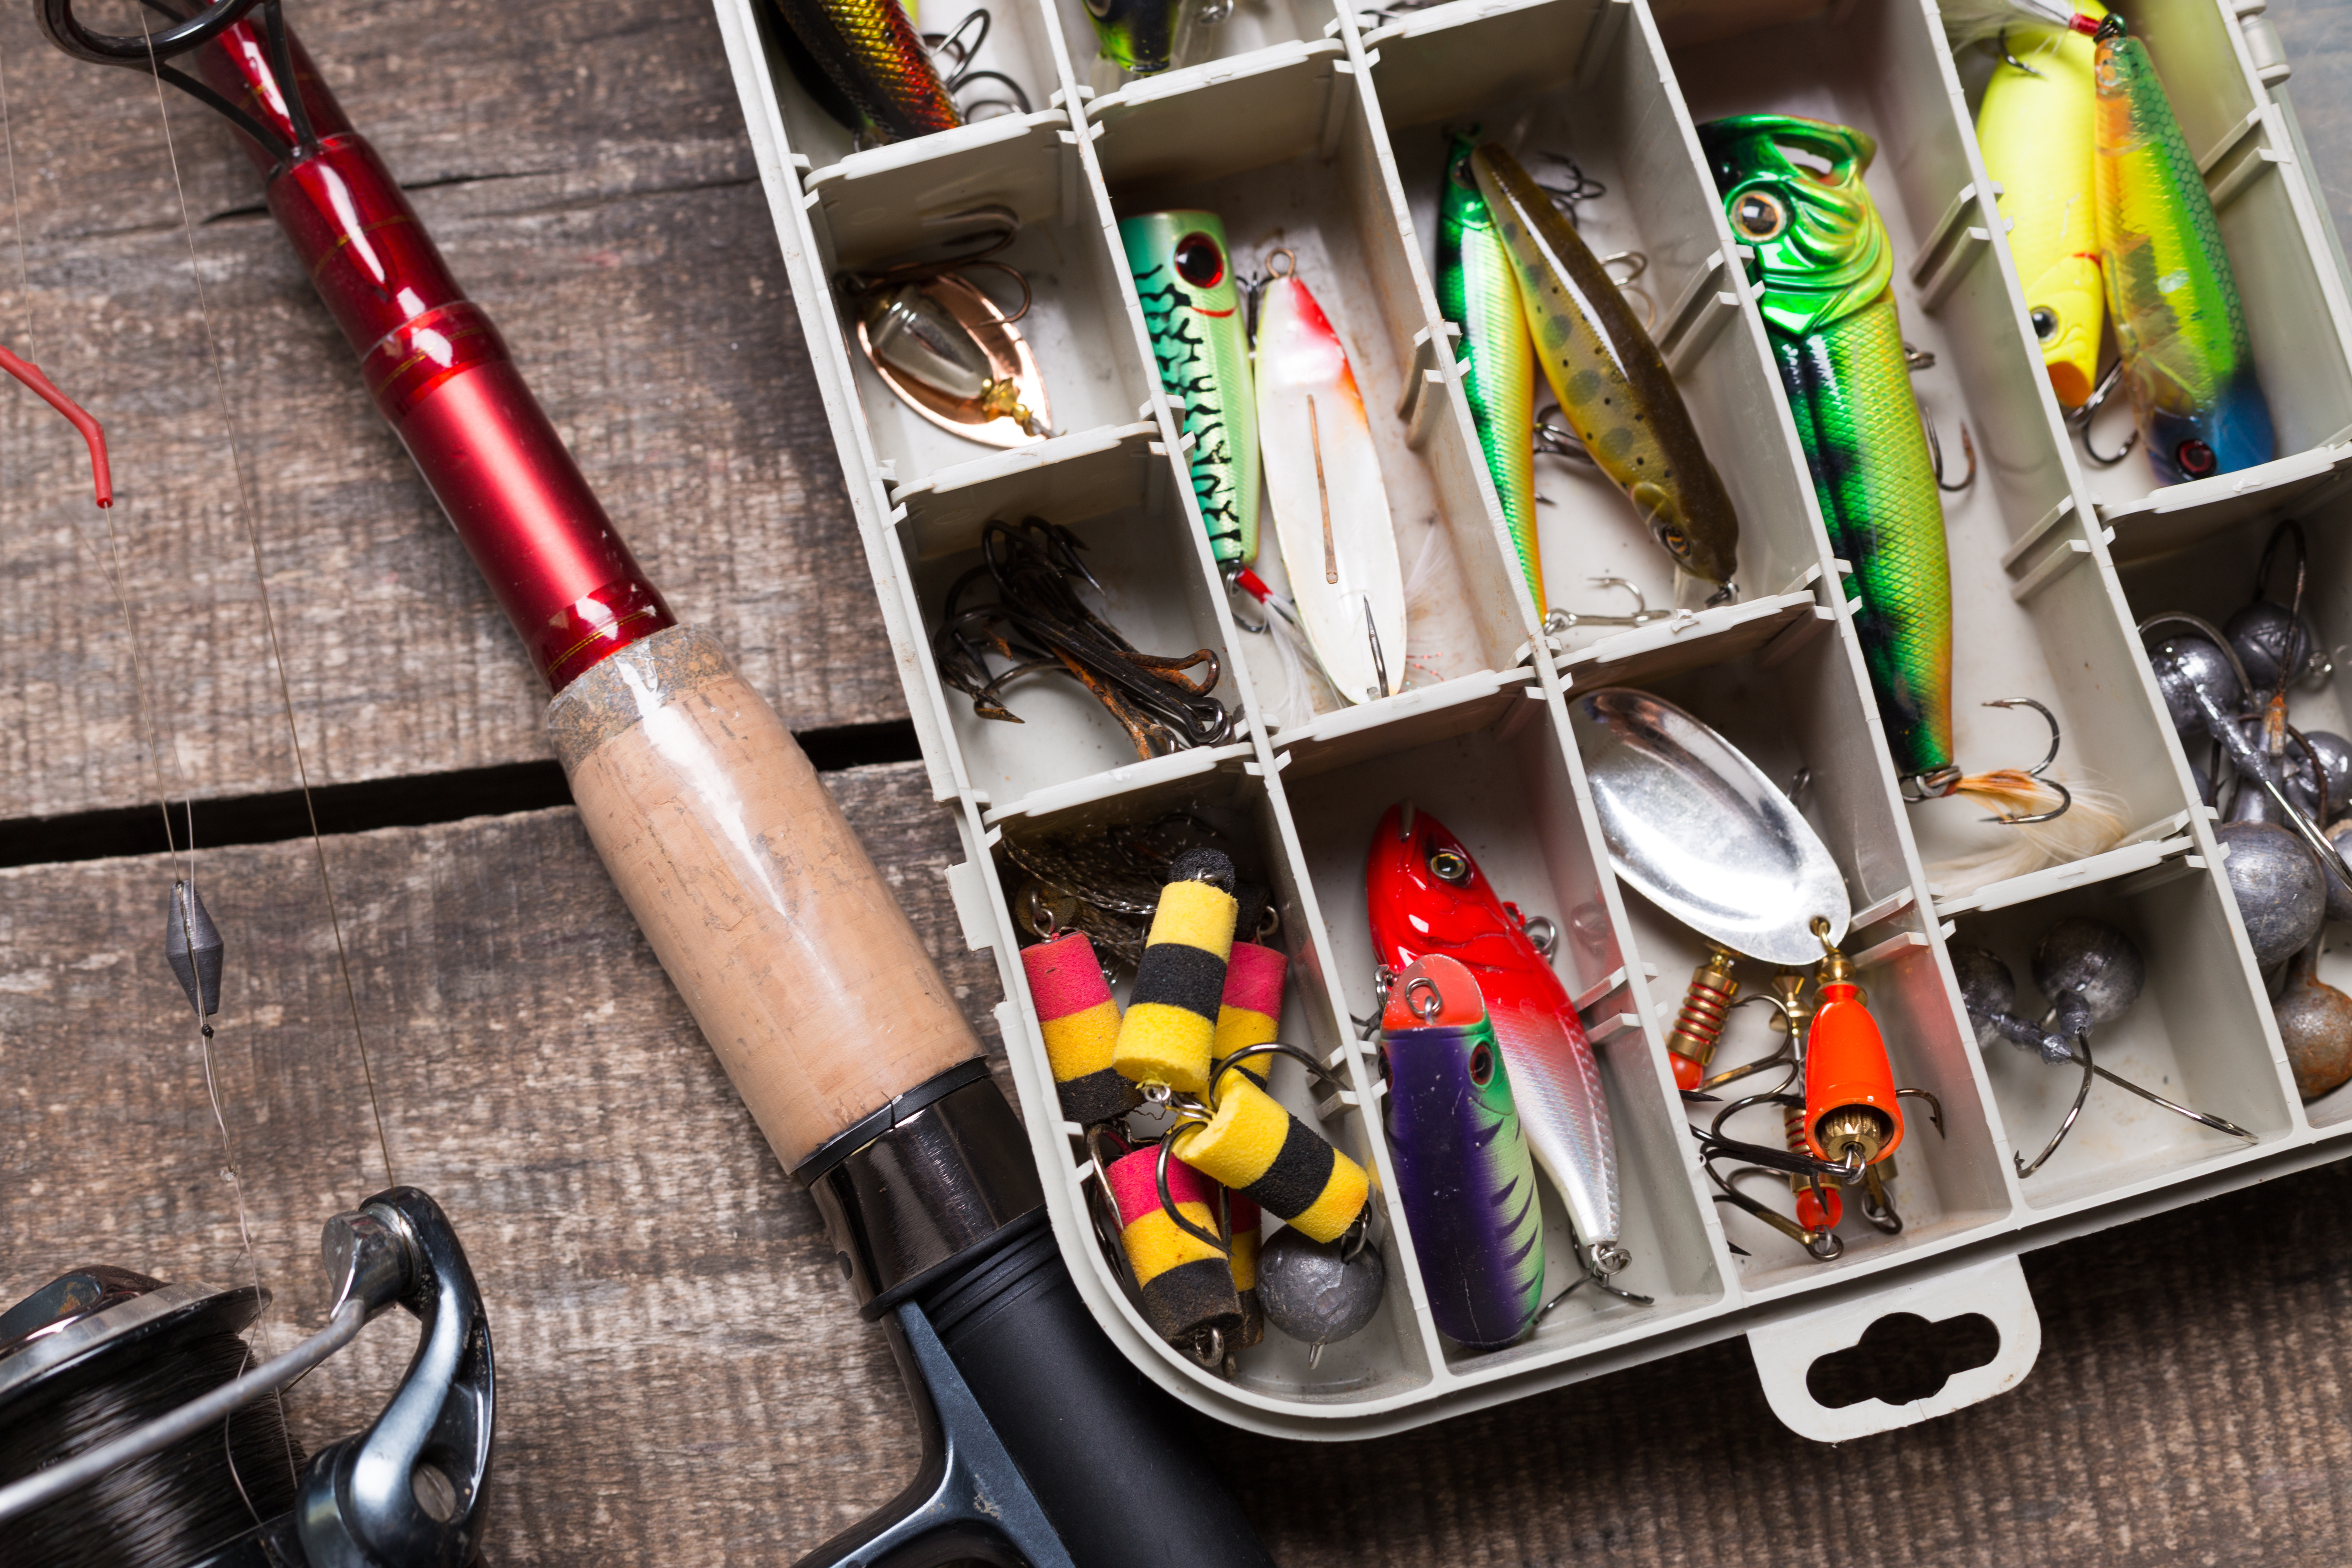 bait and tackle box rust prevention